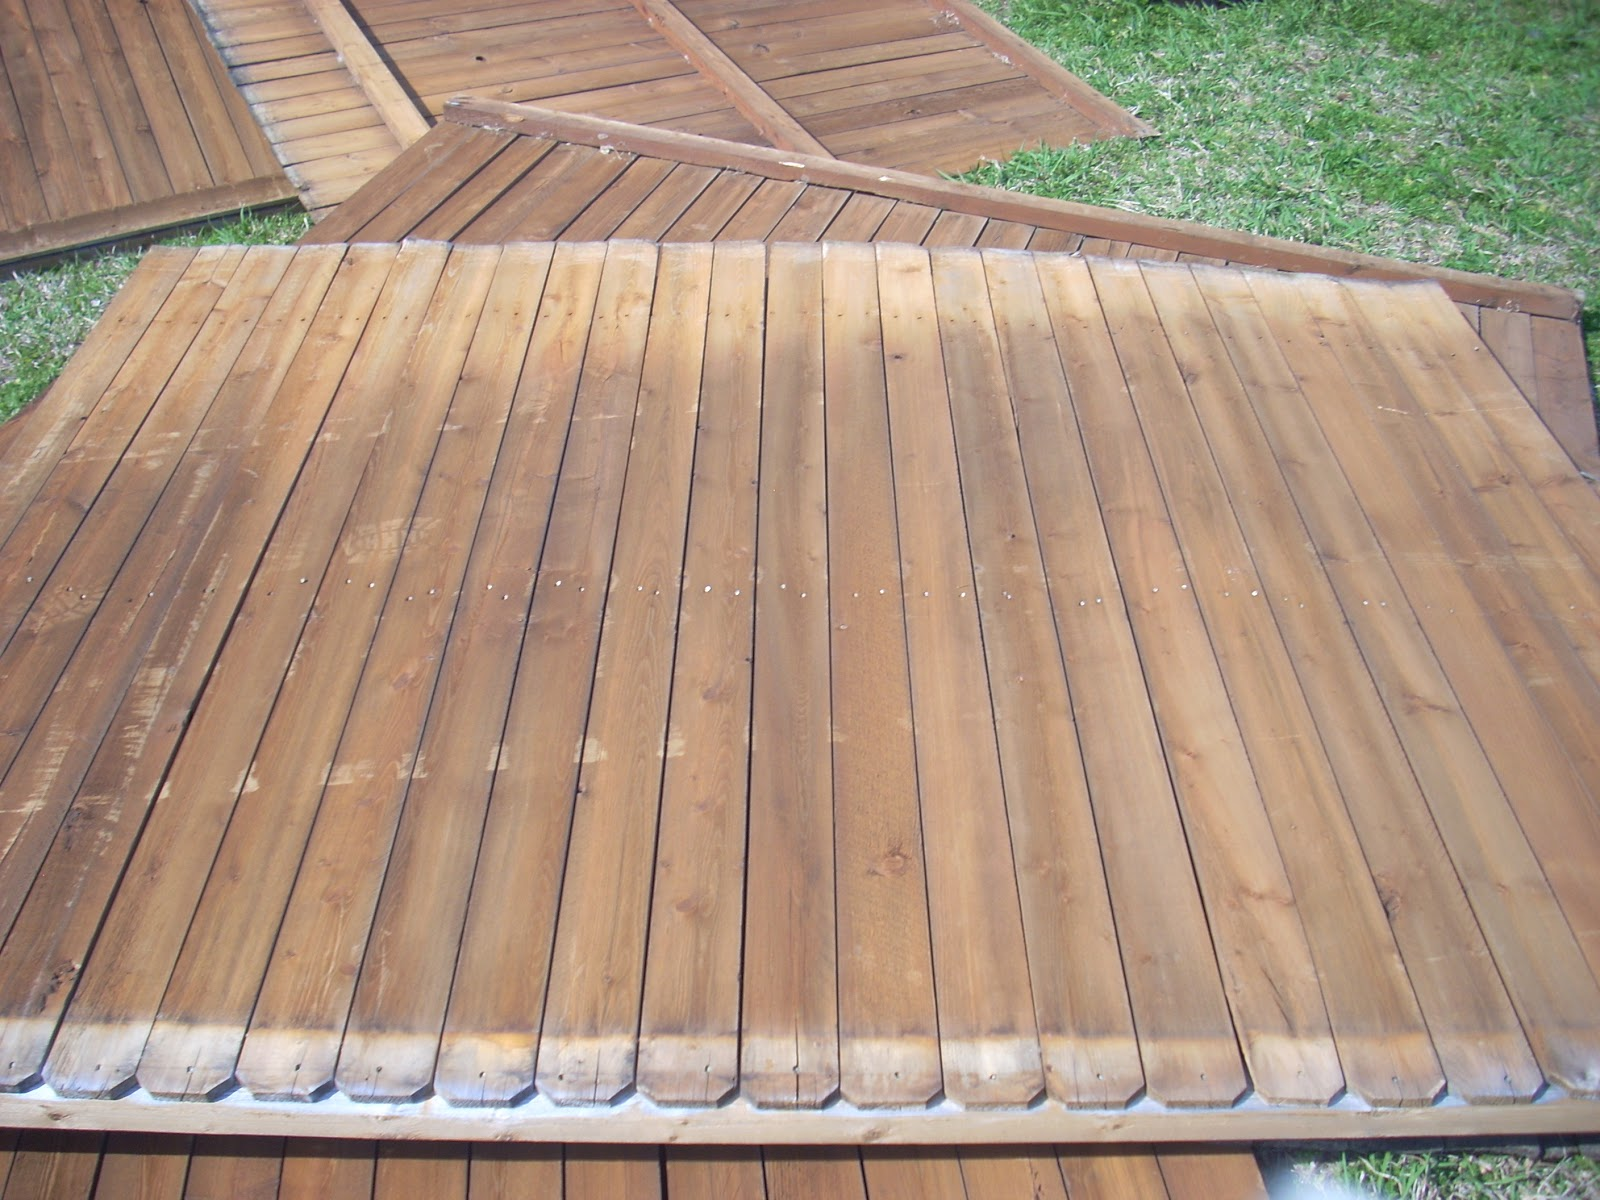 Superb img of Road Wood Fence Panels & Pickets Wylie Texas: GONE >>CEDAR!! Panel  with #8D663E color and 1600x1200 pixels